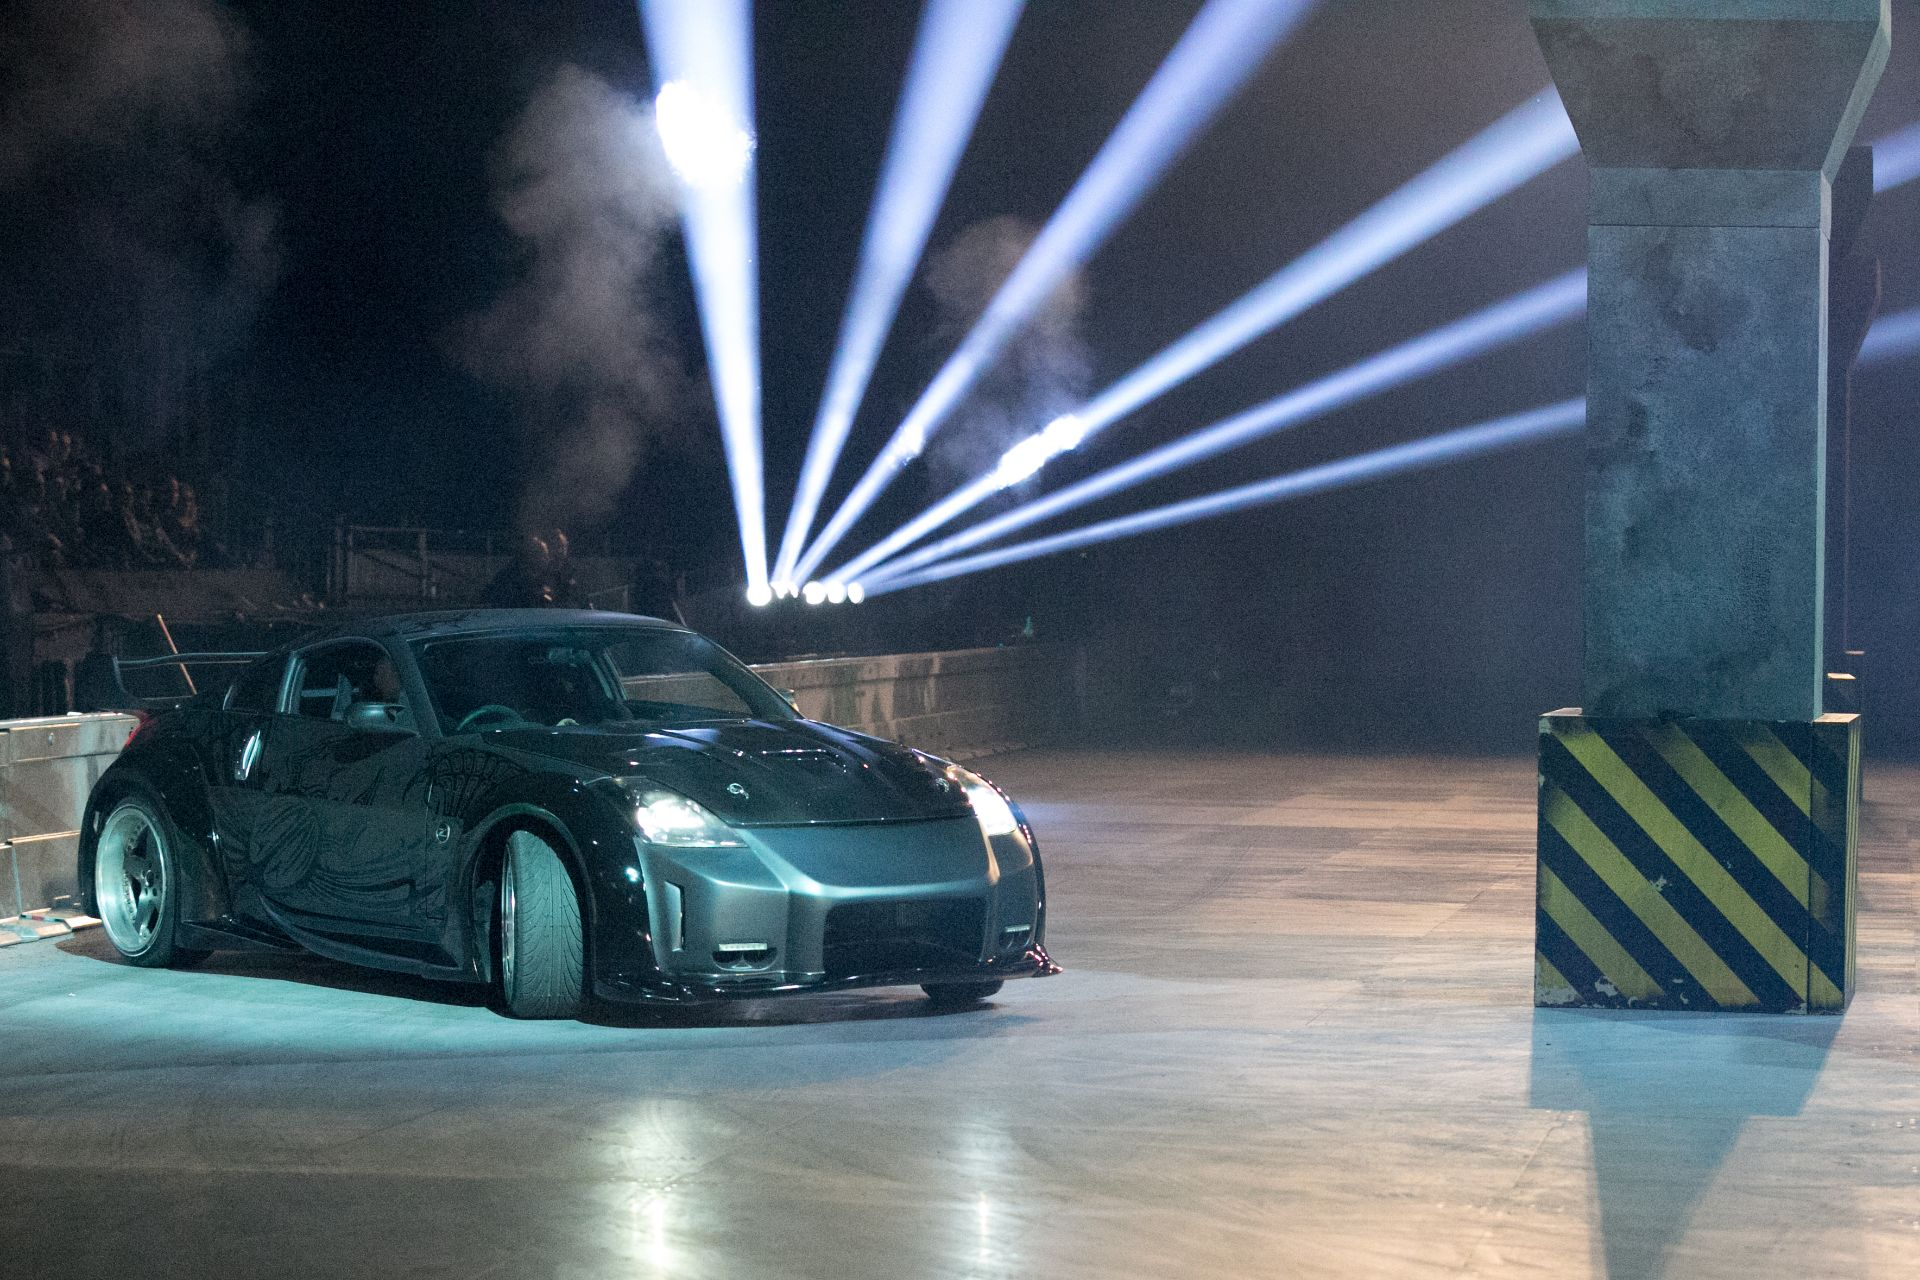 """Nissan 350z 2 door Coupe Original Picture Car From """"Fast & Furious 3""""* ,LS3 V8 6.2 Litre Engine, - Image 2 of 16"""